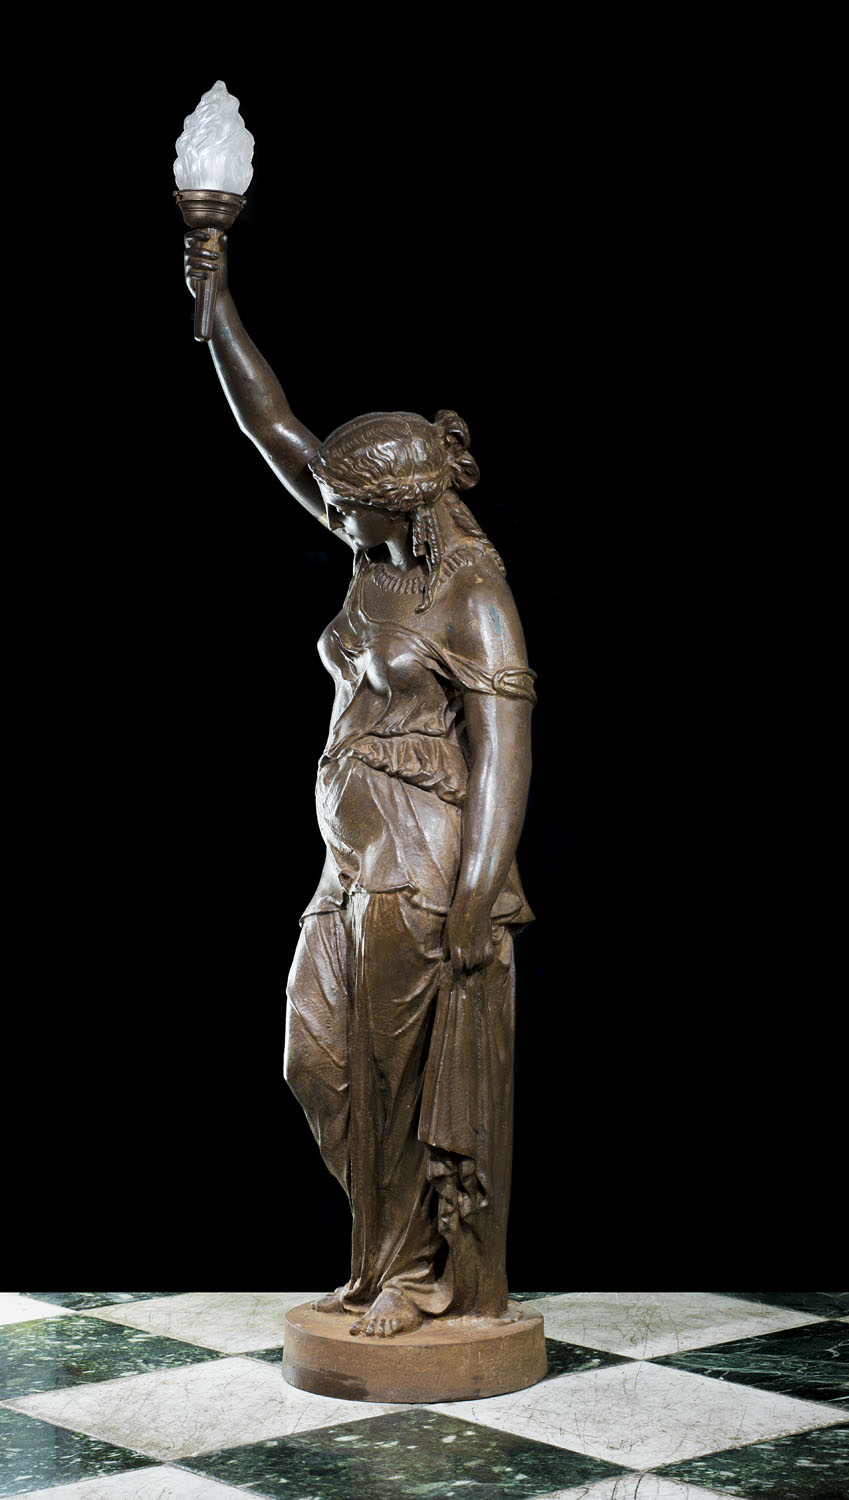 An Antique cast iron statue of Liberty